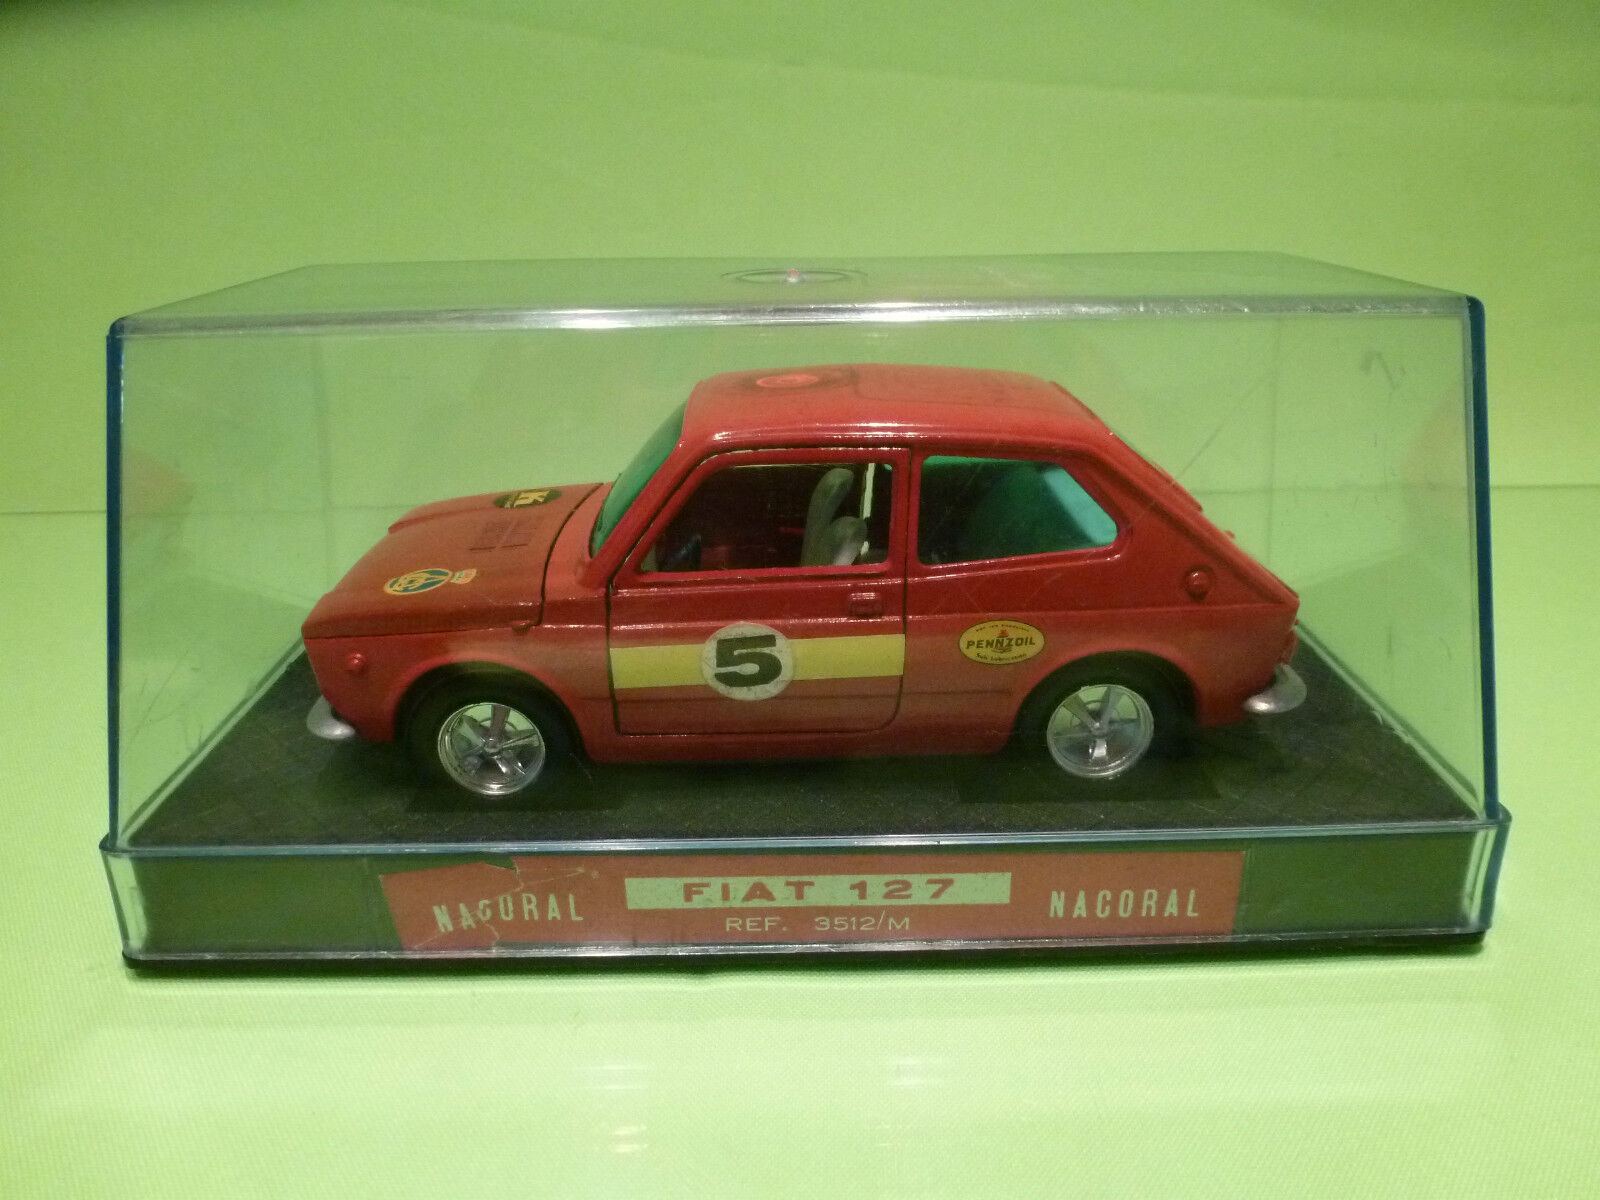 NACORAL 3512 M FIAT 127 RALLY - rosso  1 25 - NM IN SHOW CASE